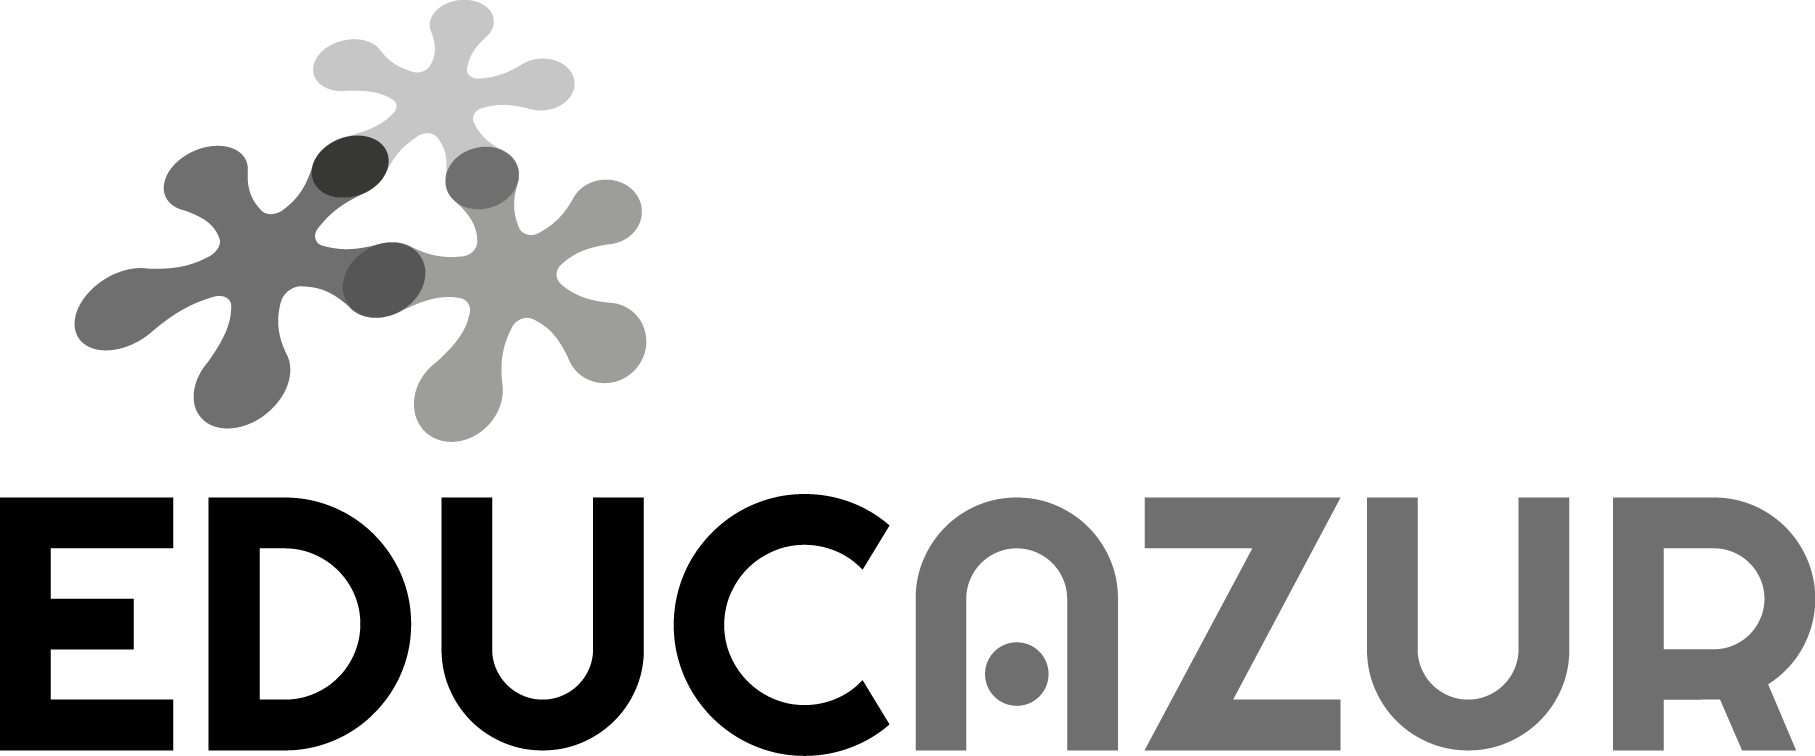 LOGO EDUCAZUR nb